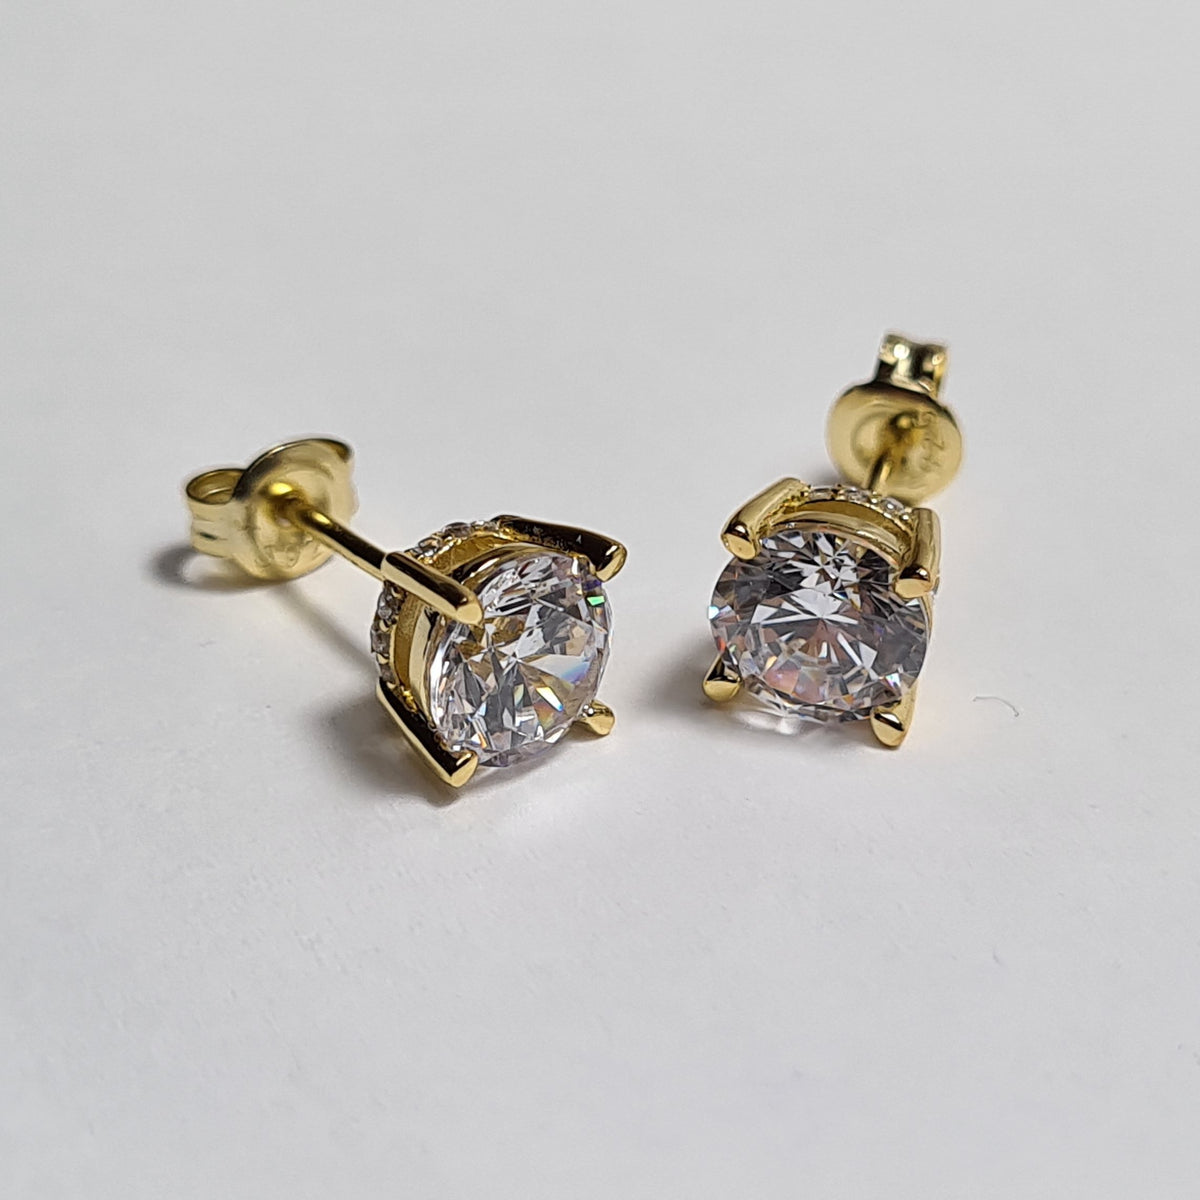 Light Zircon Stud Earrings